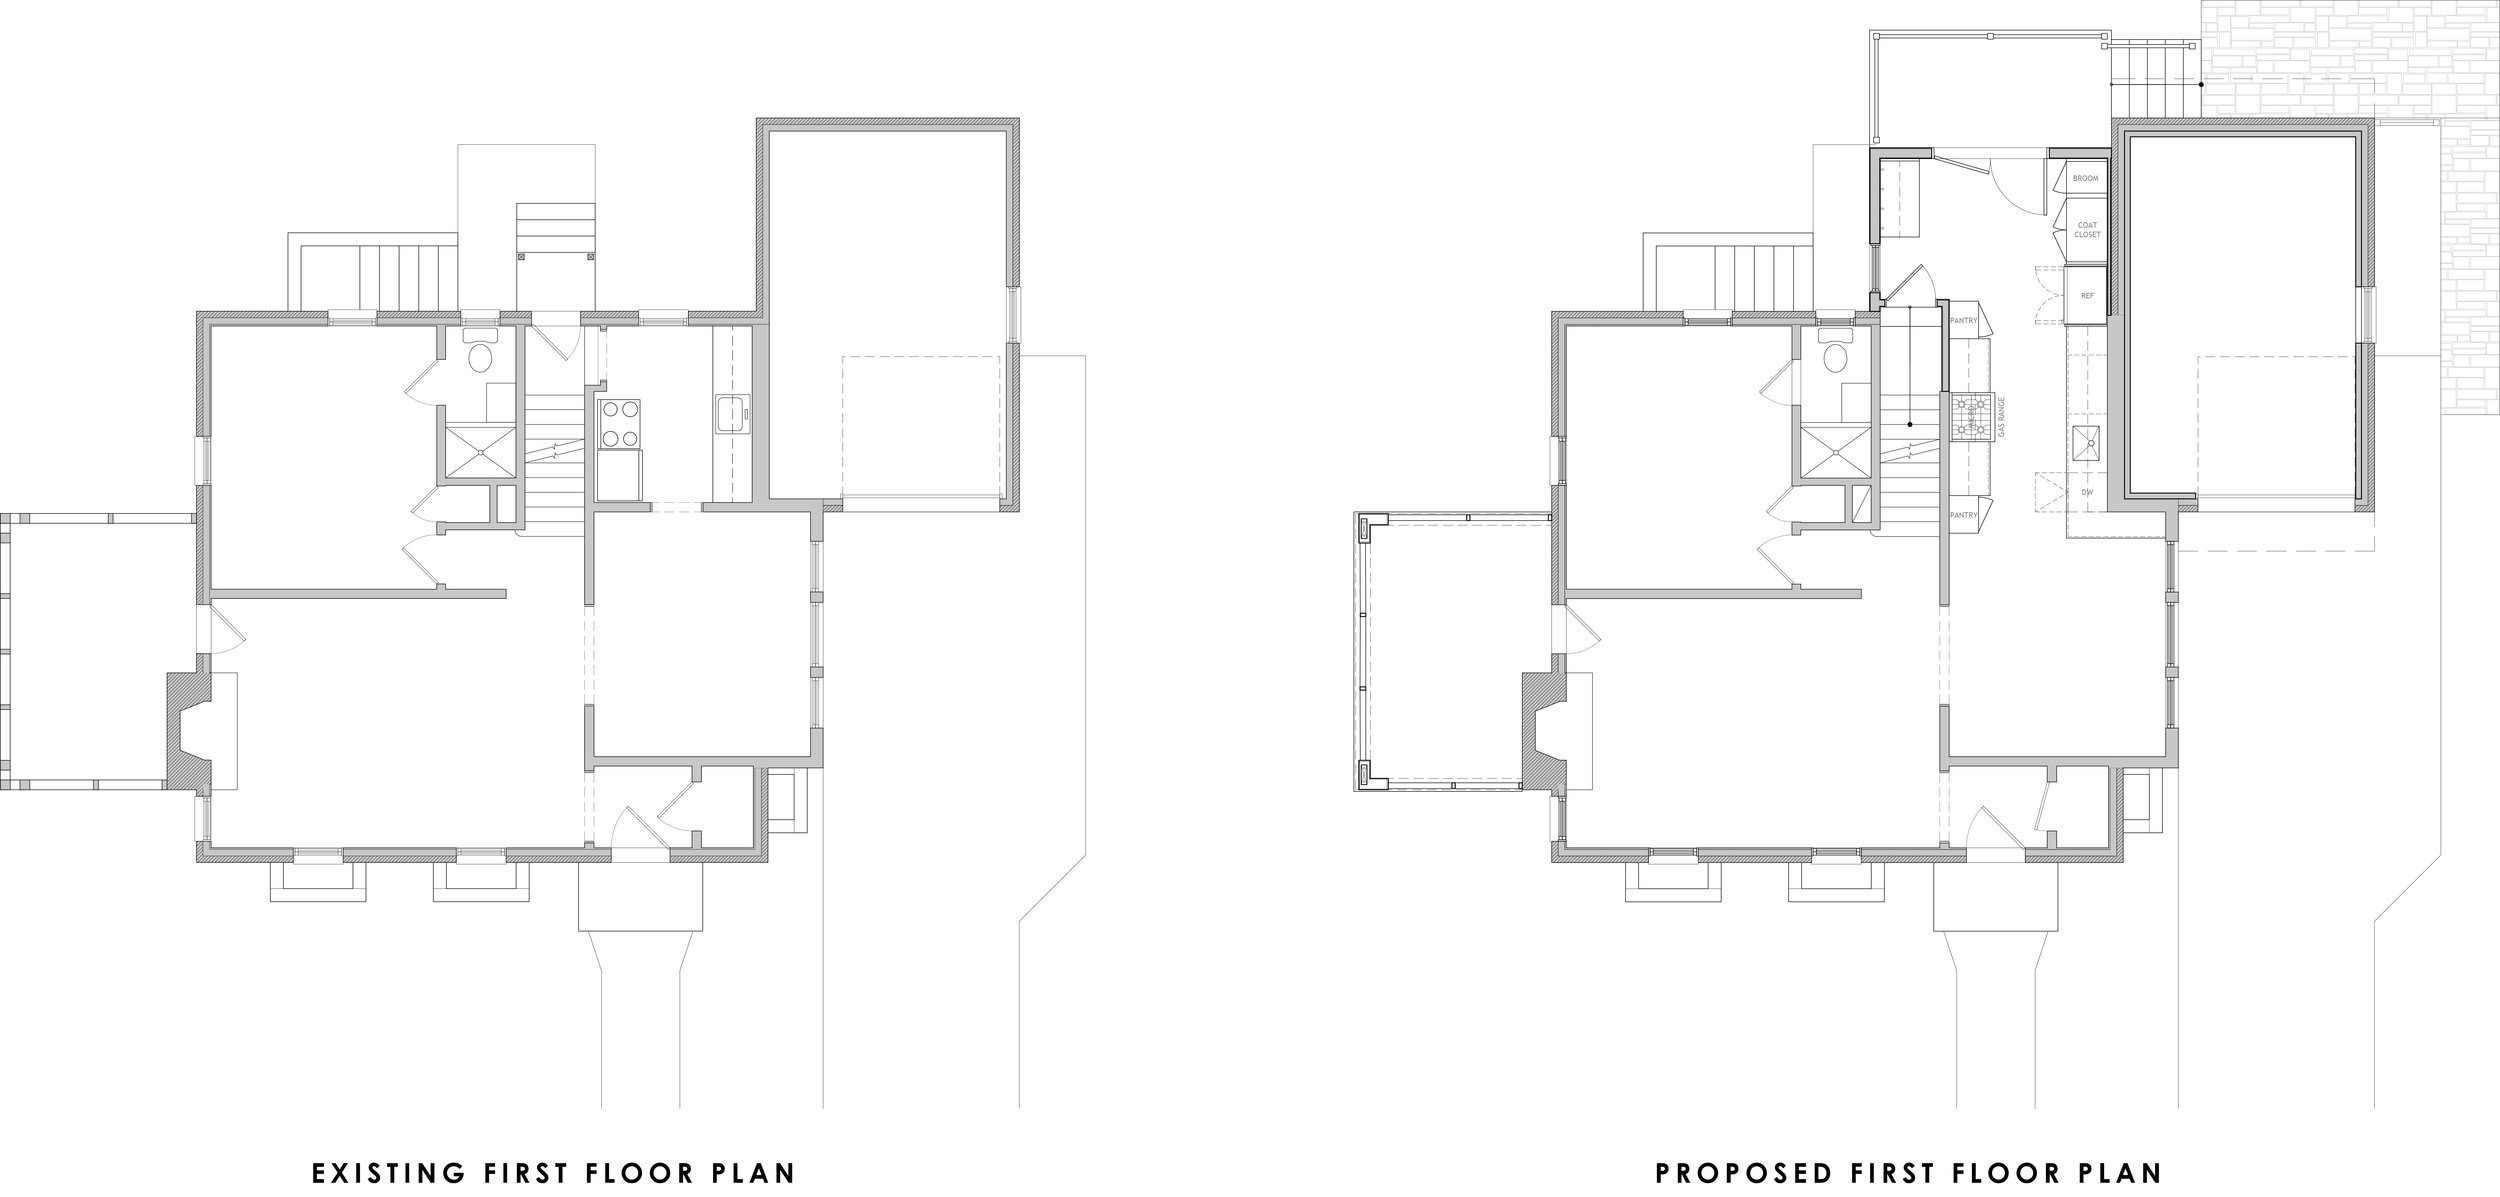 15014-4551 Reno-Permit_Plans-Elevs_CA-Website 1.jpg